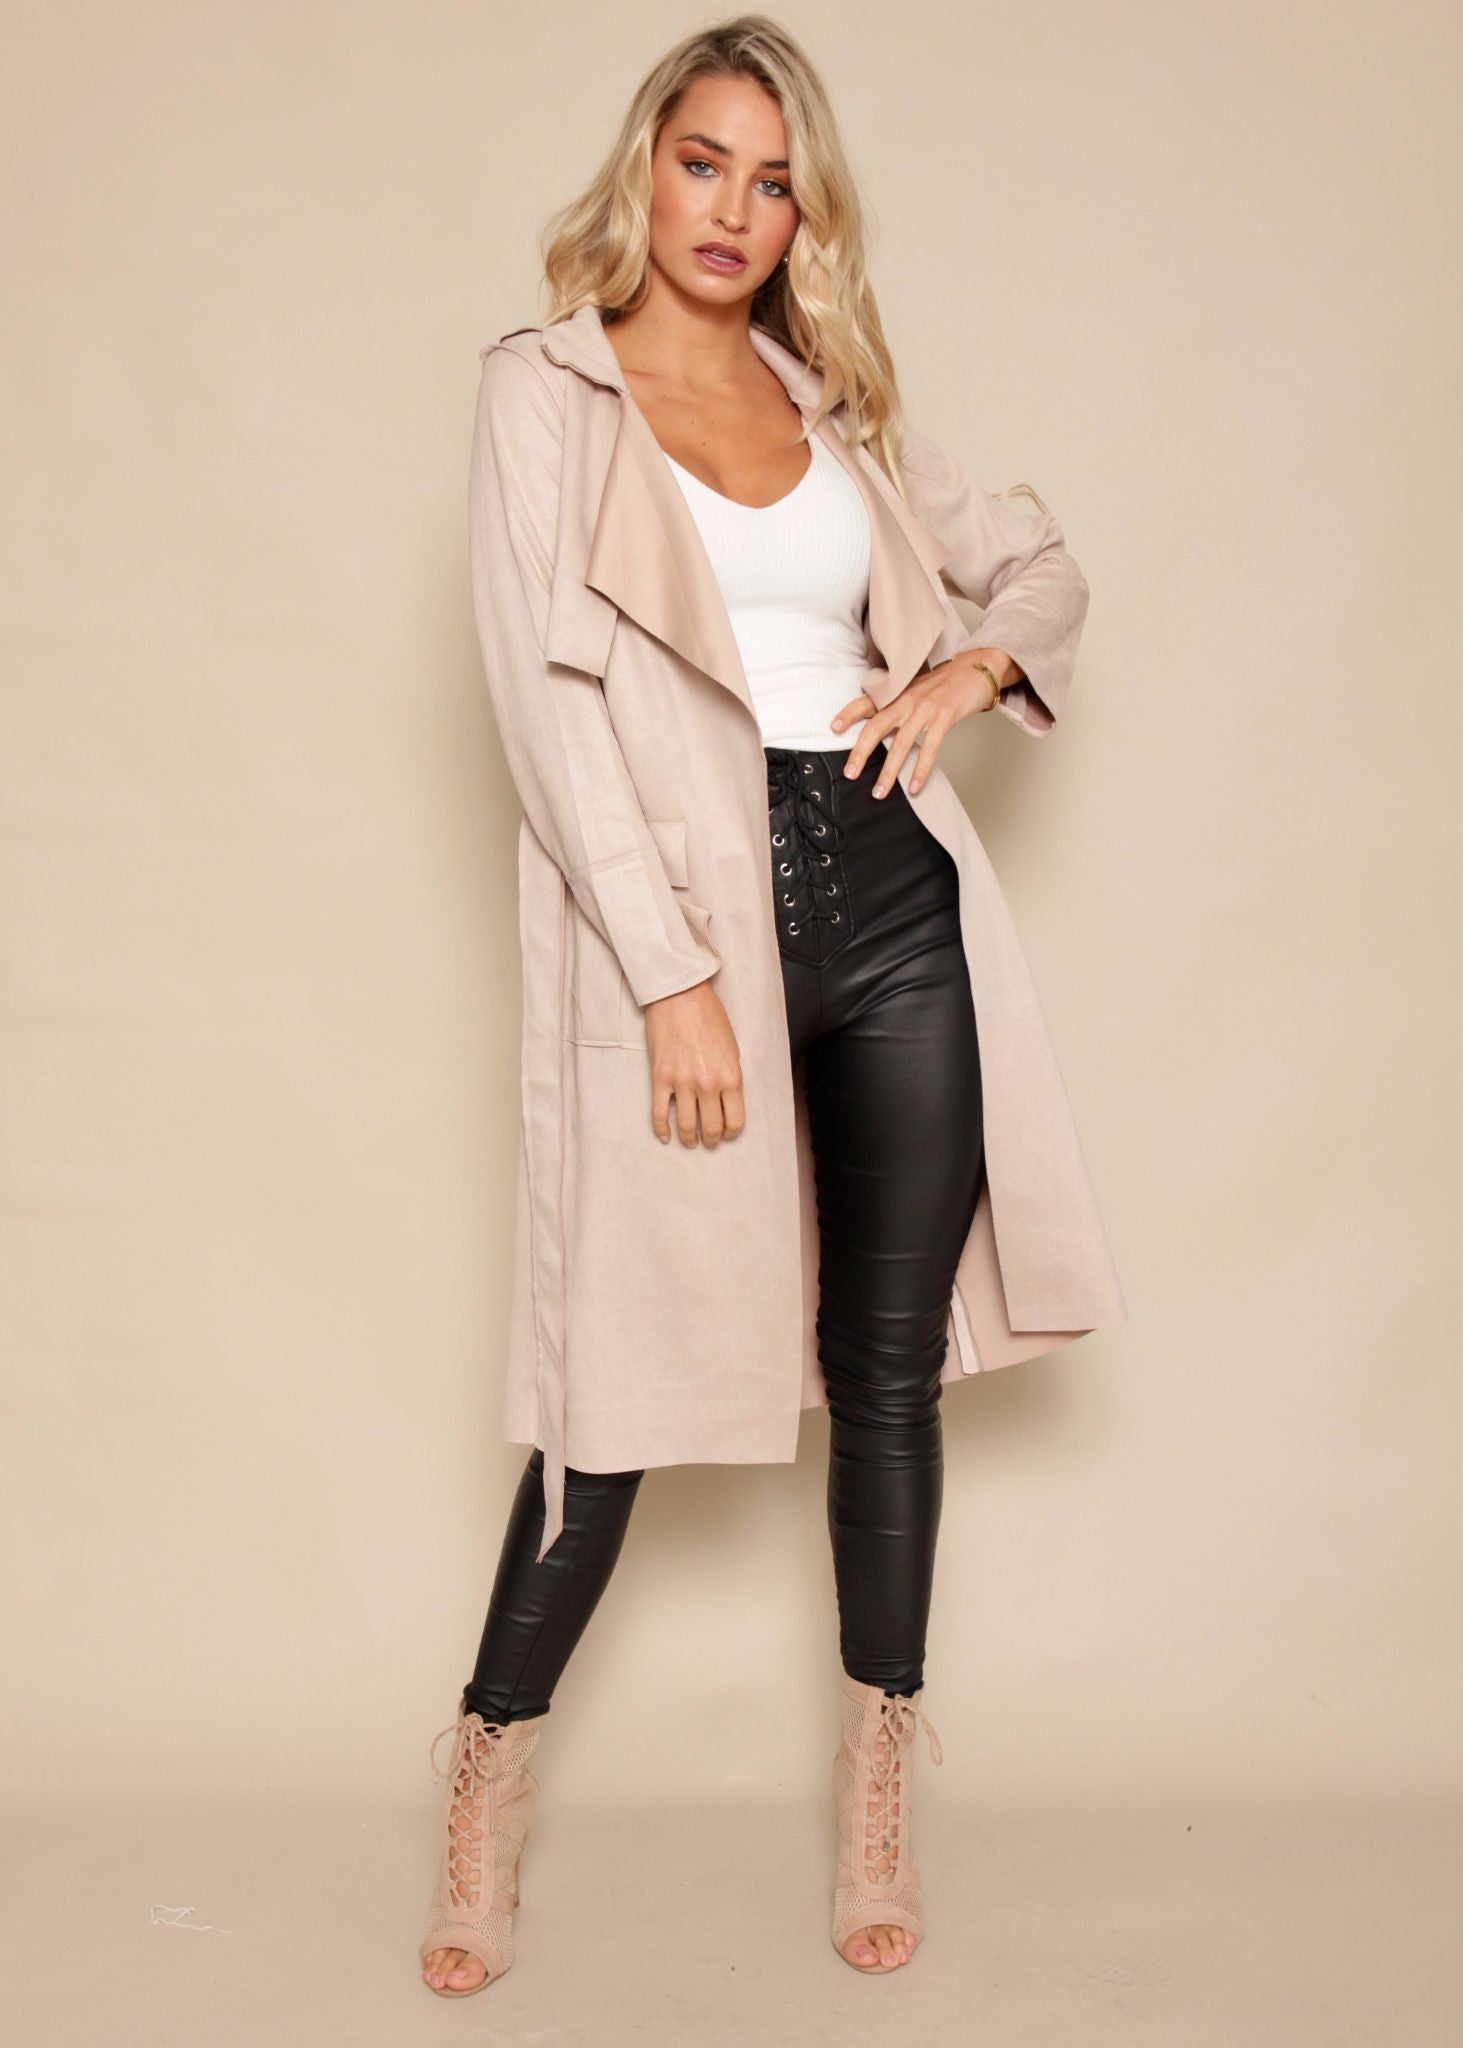 Restless Soul Suede Trench - Blush